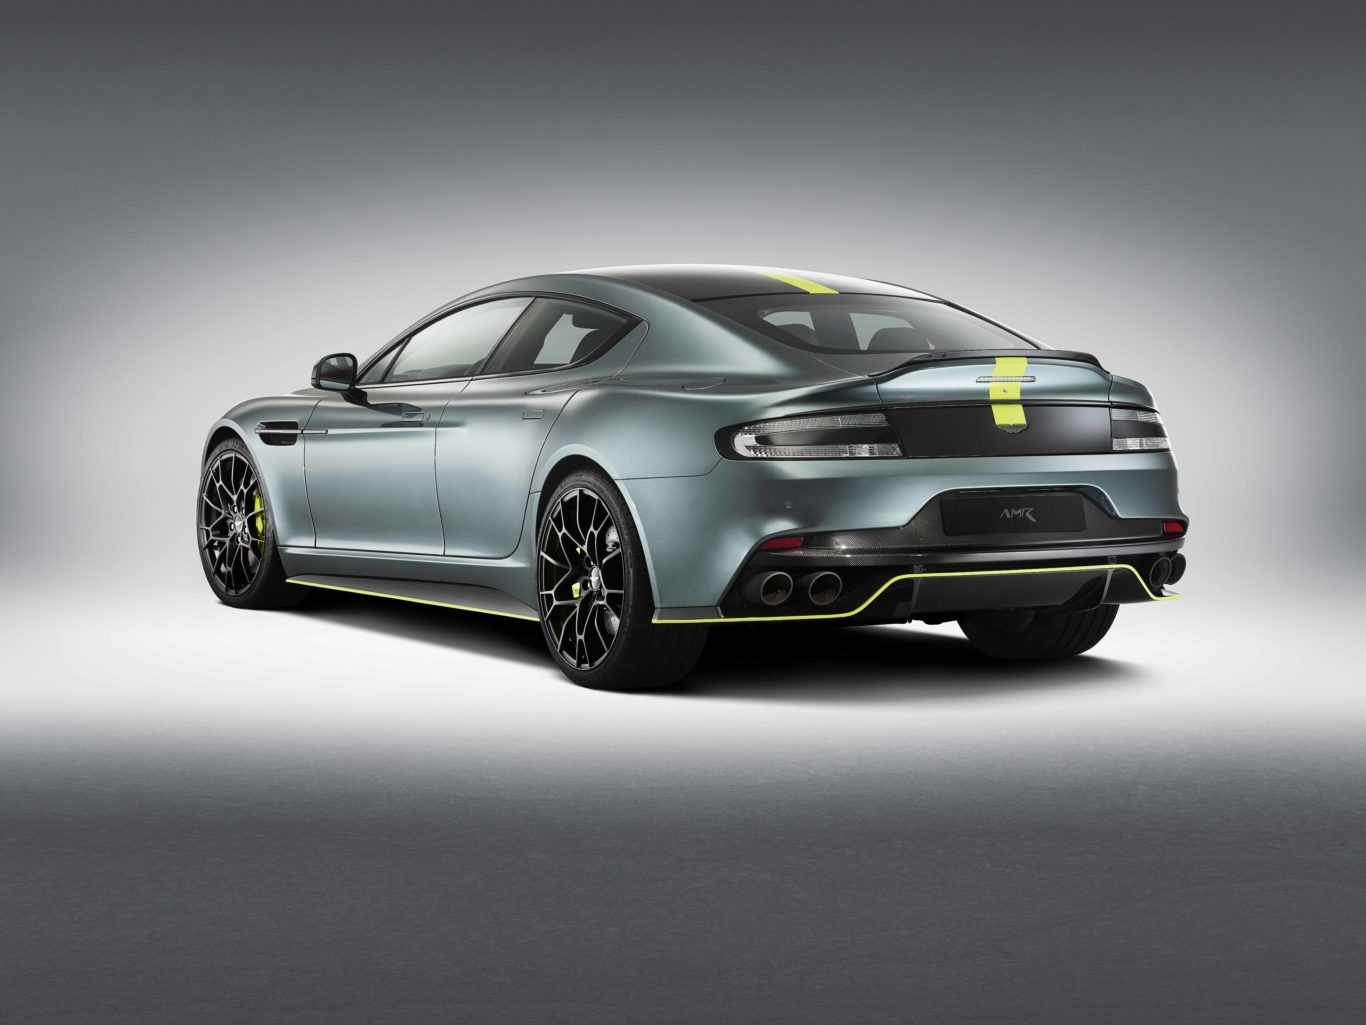 The Rapide AMR features an all-new exhaust system